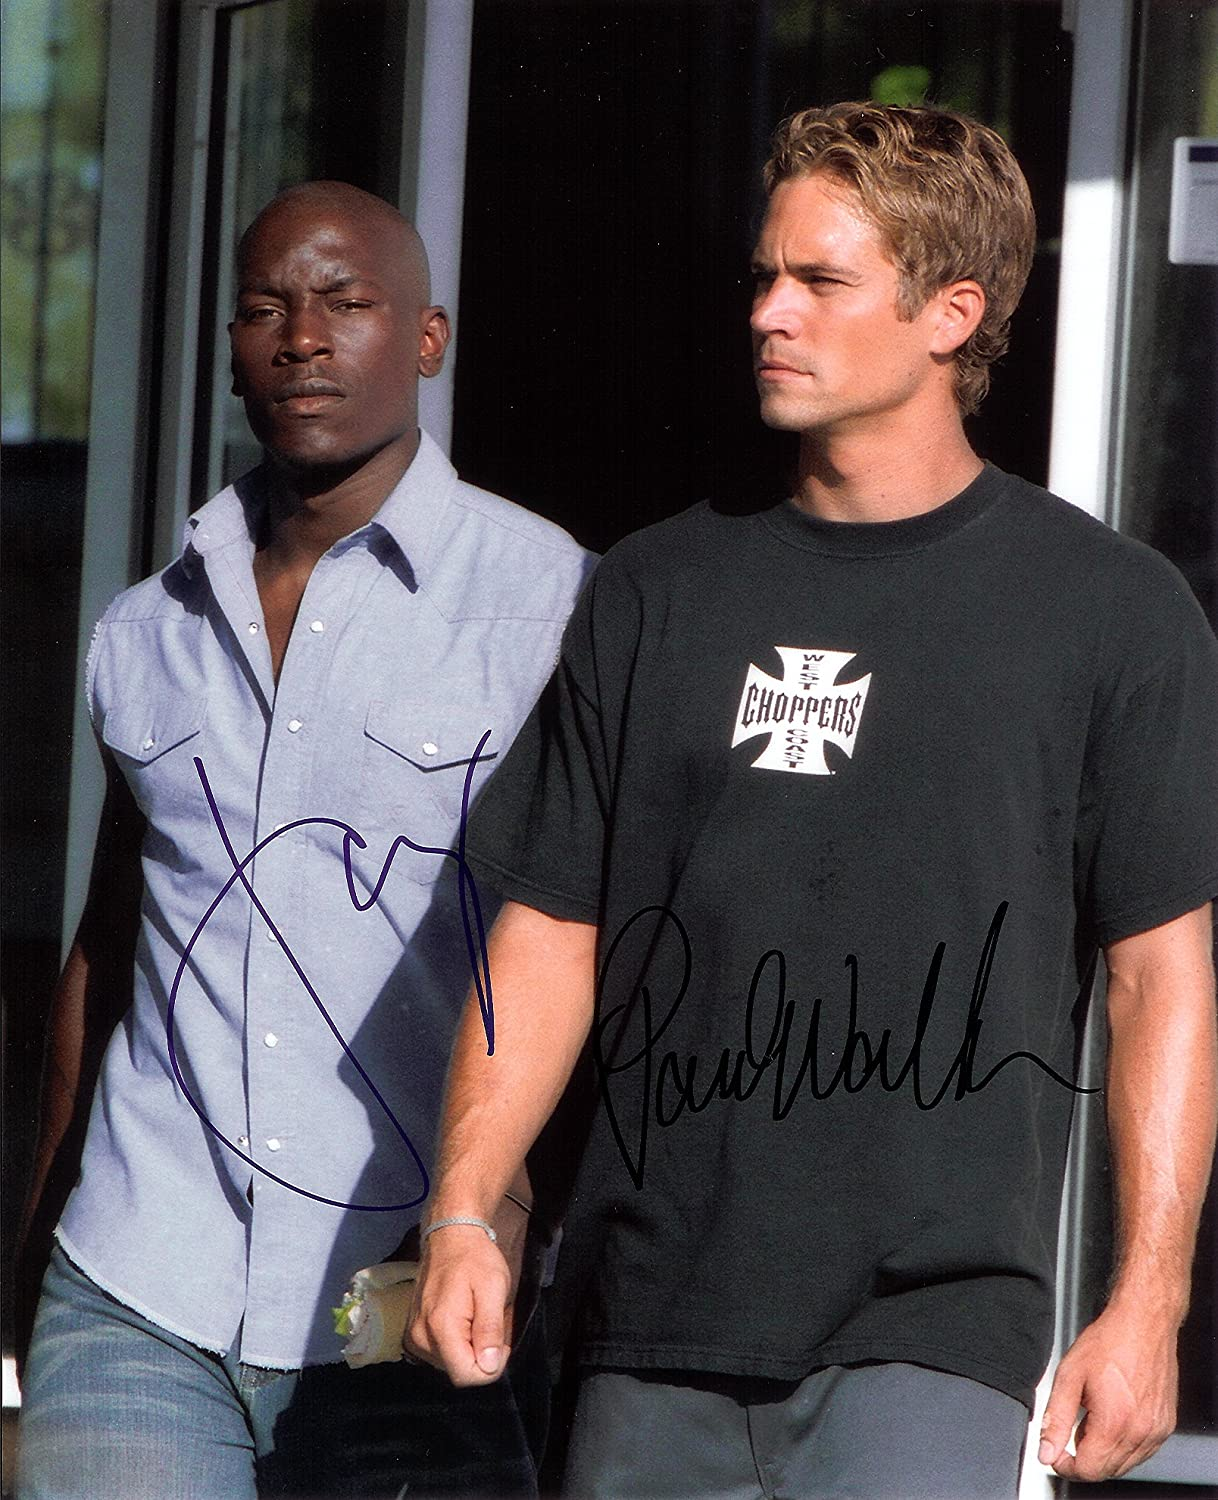 Fast & Furious with Paul Walker Signed Autographed 8 X 10 RP Photo - Mint Condition brett favre autographed hand signed green bay packers 16x20 record breaking photo with psa dna authenticity